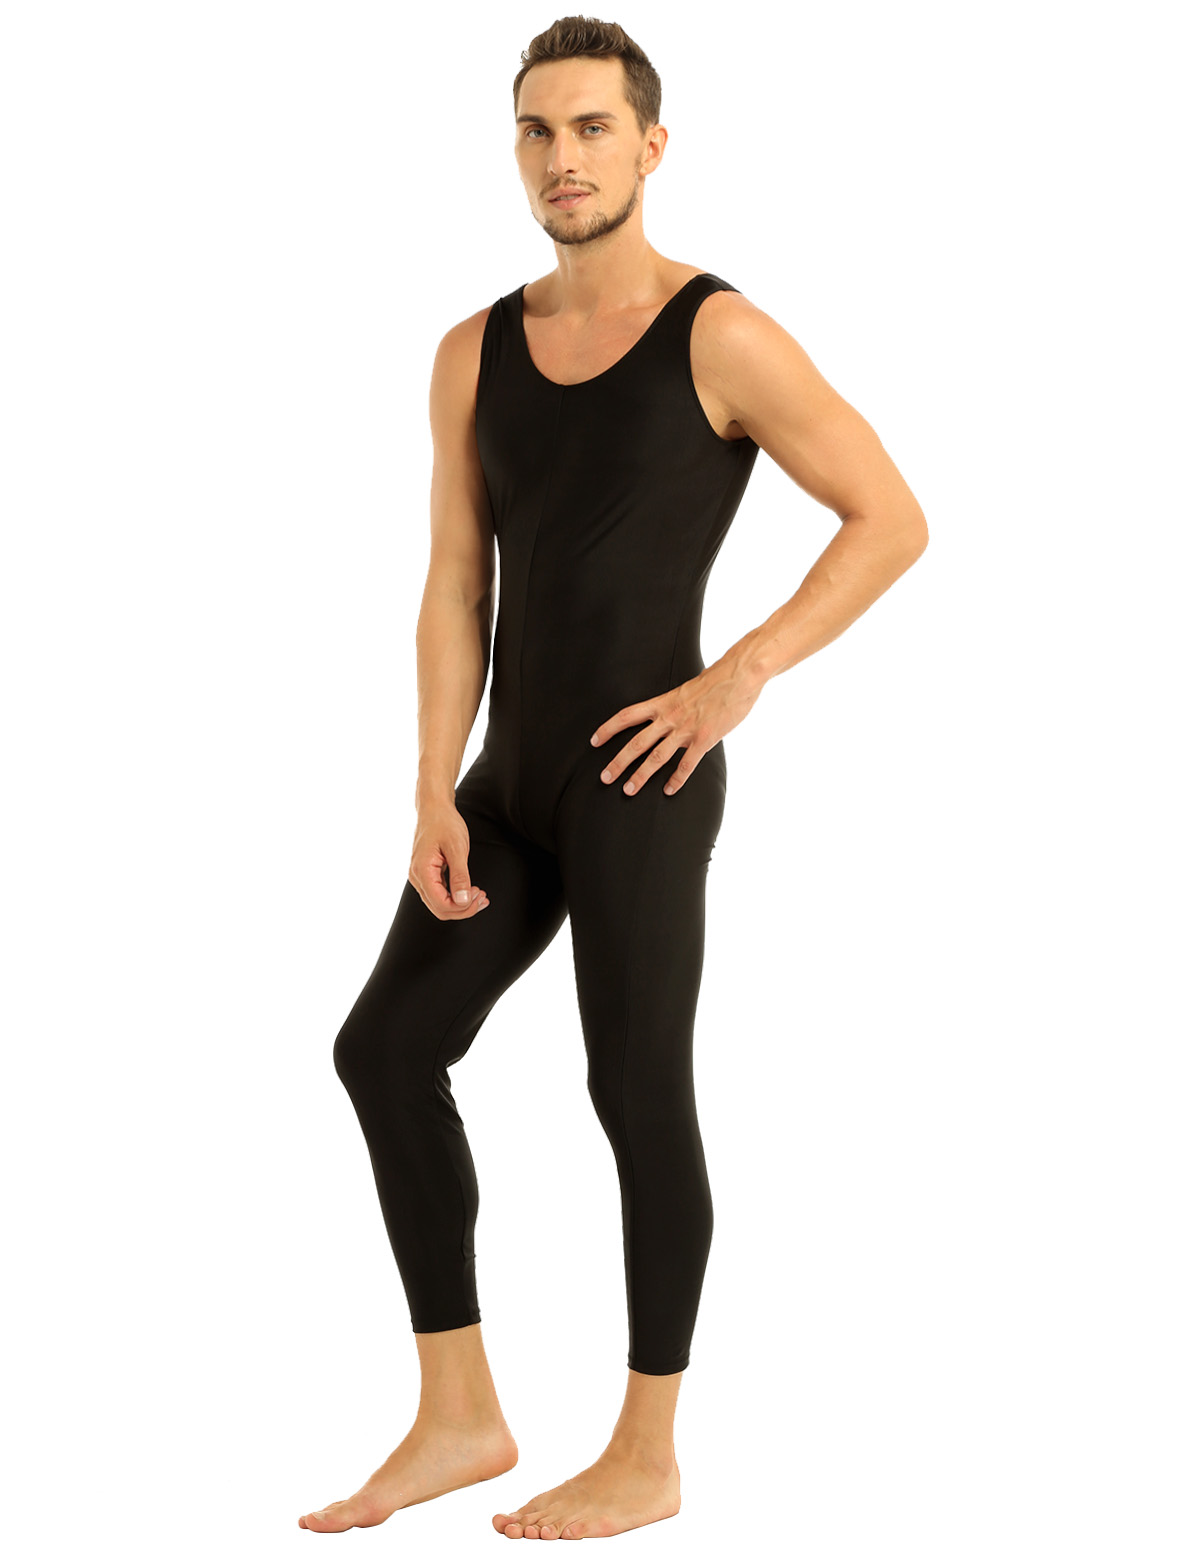 Men Sleeveless Leotard Bodysuit Lycra Tights Leggings for Ballet Dance Vest Teddy Sports Unitard Catsuit Male Dancewear Jumpsuit 30